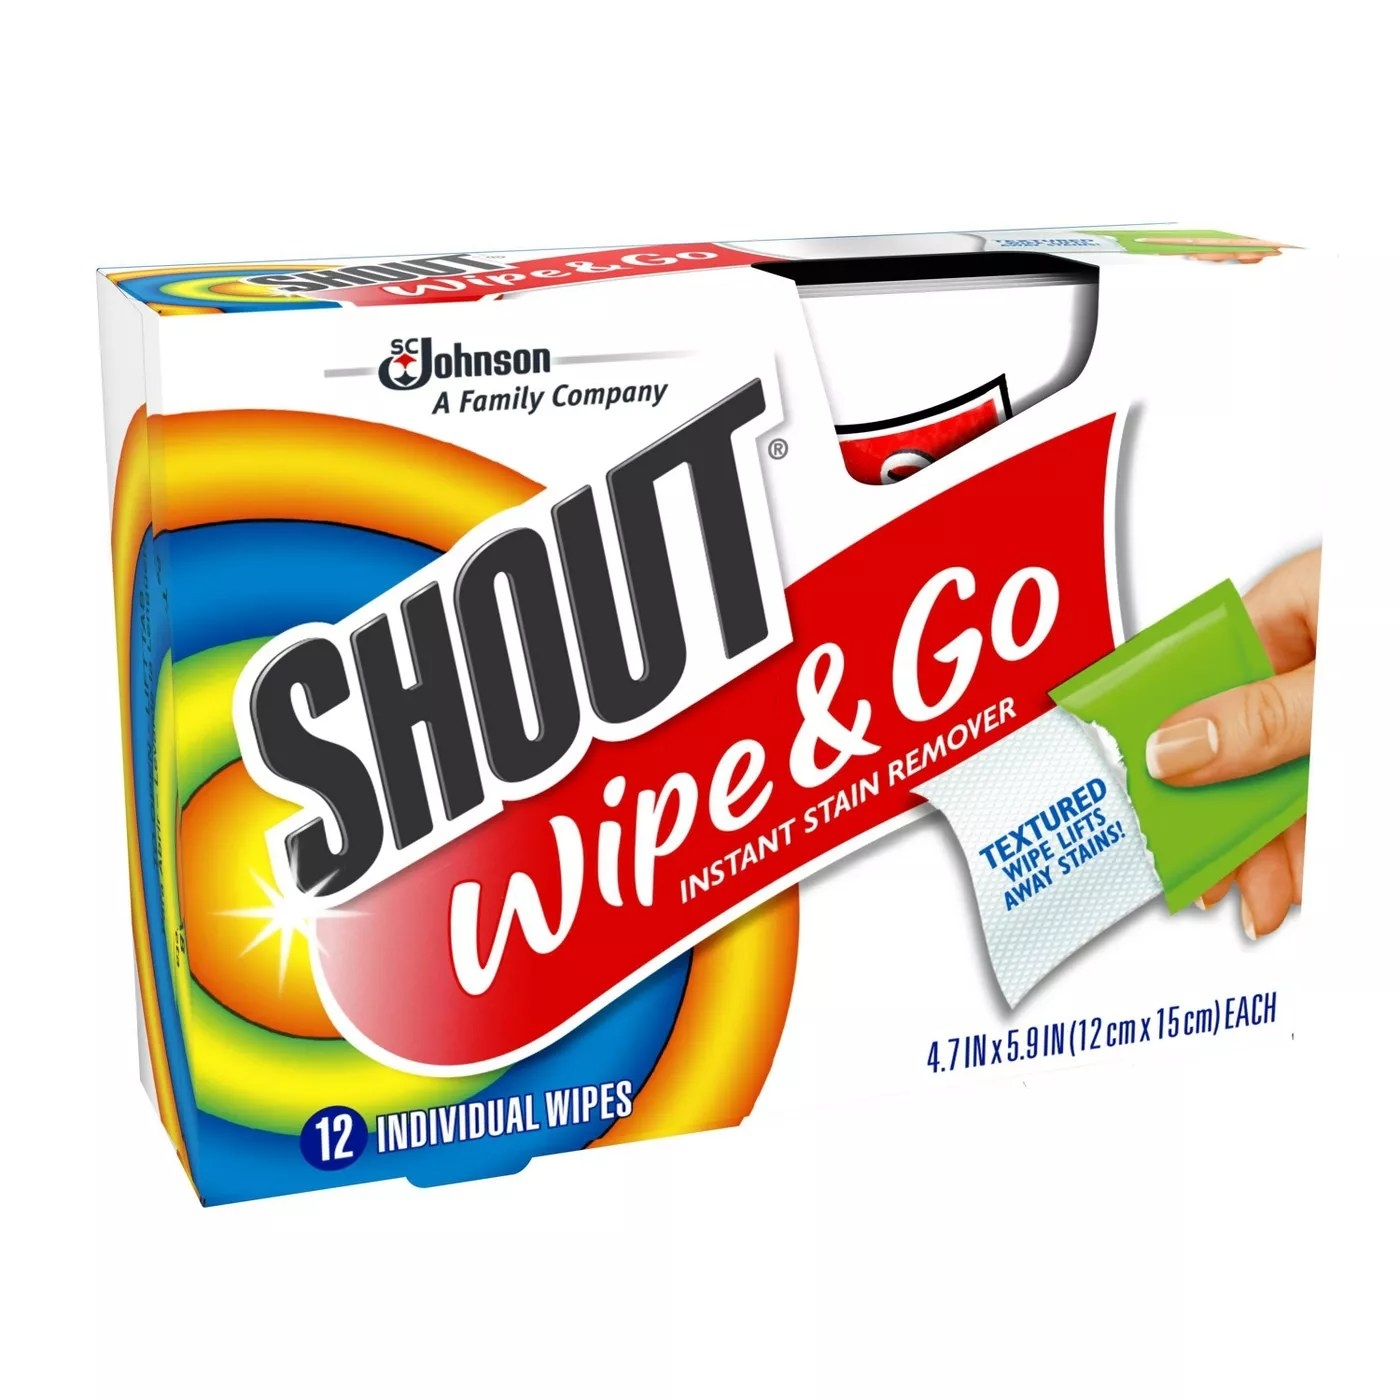 A 12-pack of Shout's Wipe & Go instant stain remover wipes